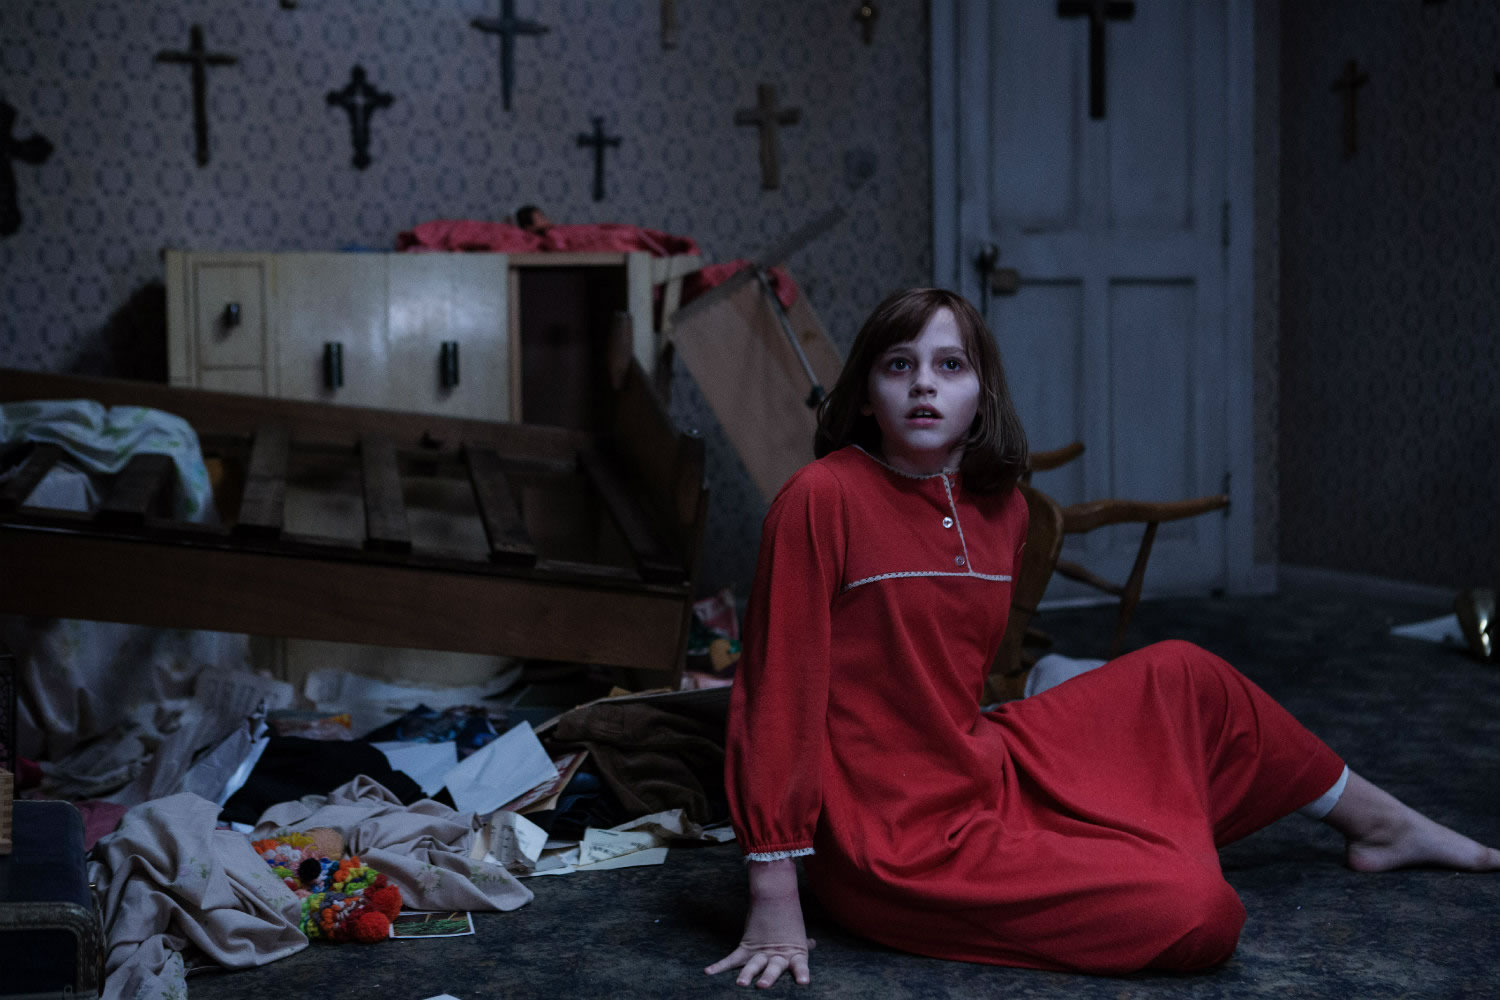 girl in red pijamas in the conjuring 2 movie